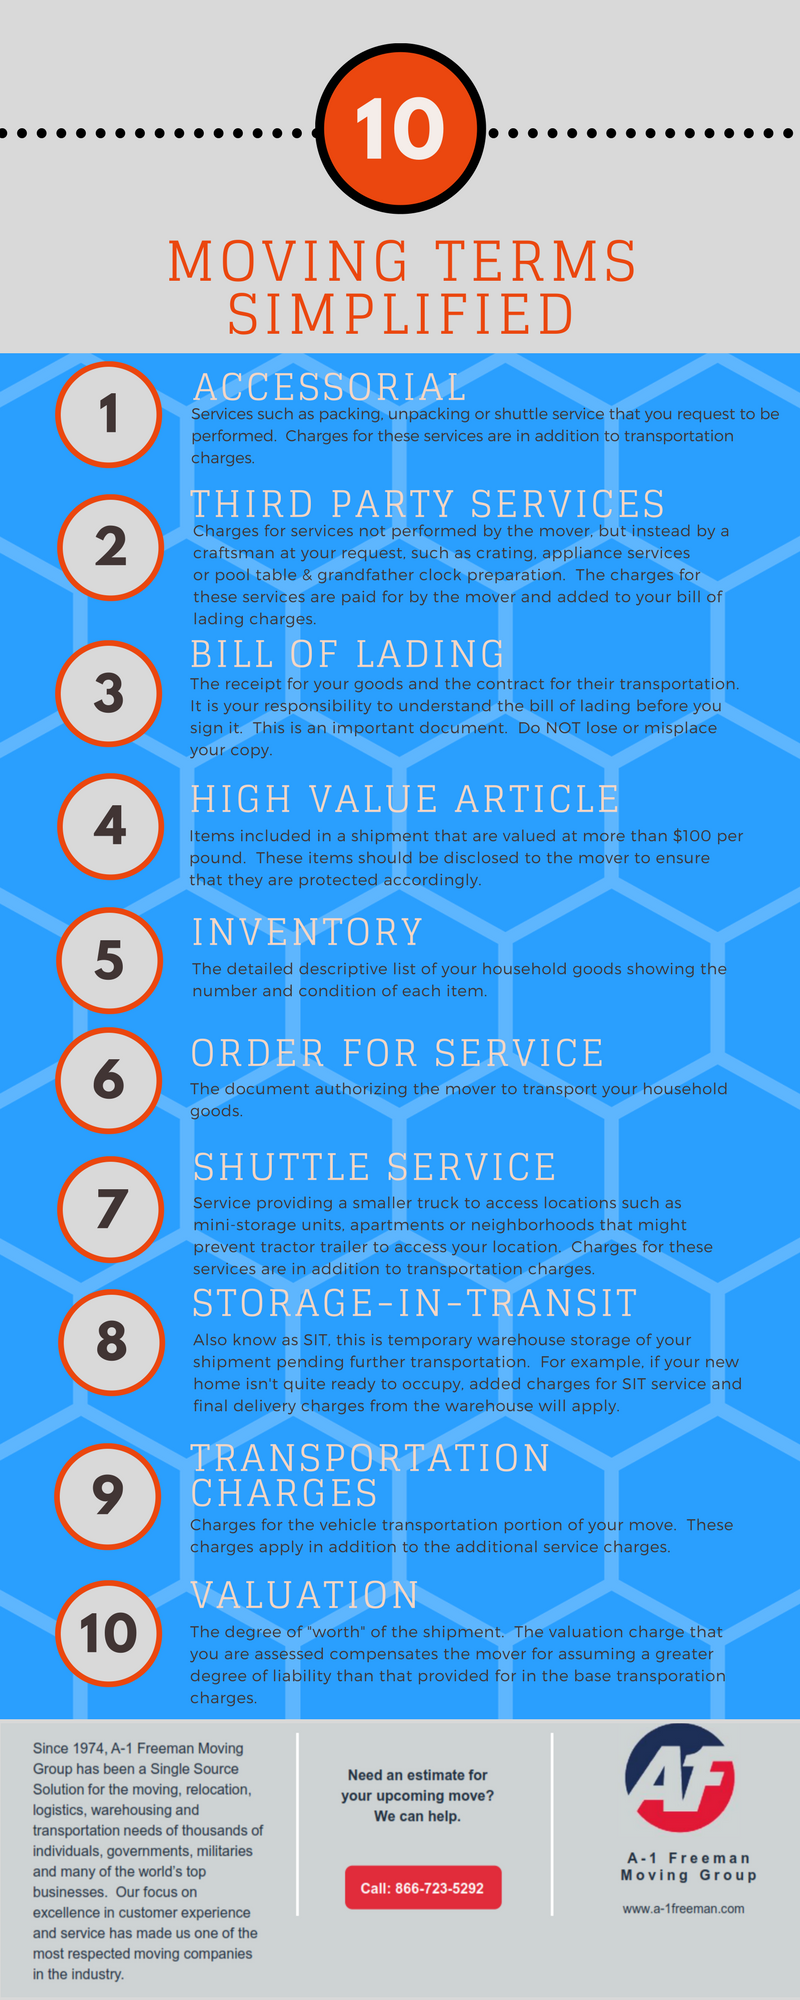 A-1 Freeman Moving Group Dallas Moving Terms Infographic